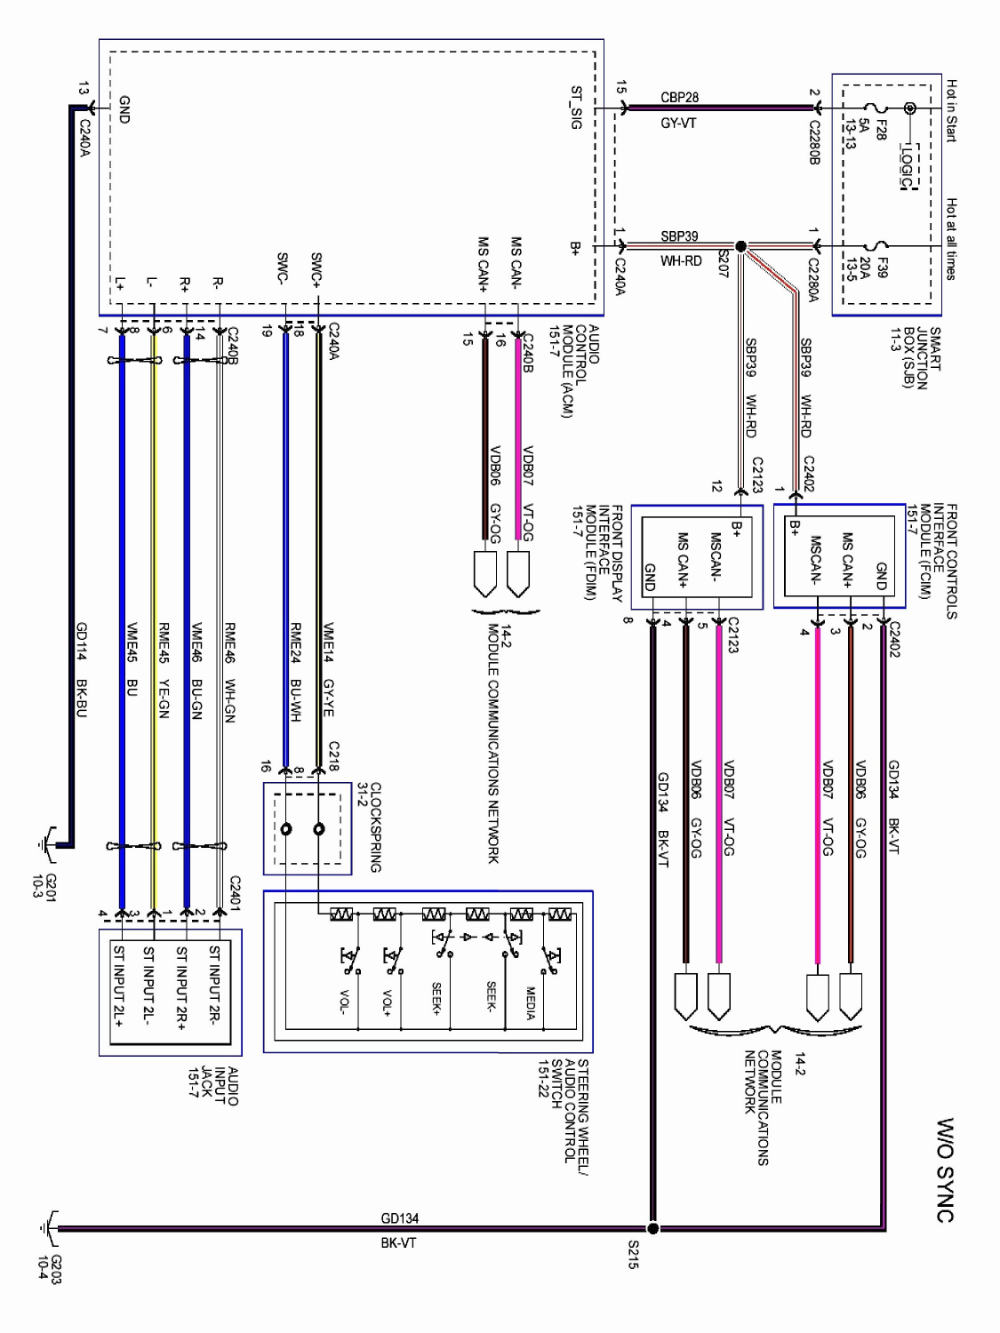 Car Stereo Amplifier Diagram Circuit Diagram Images House Wiring Circuit Diagram Electrical Wiring Diagram